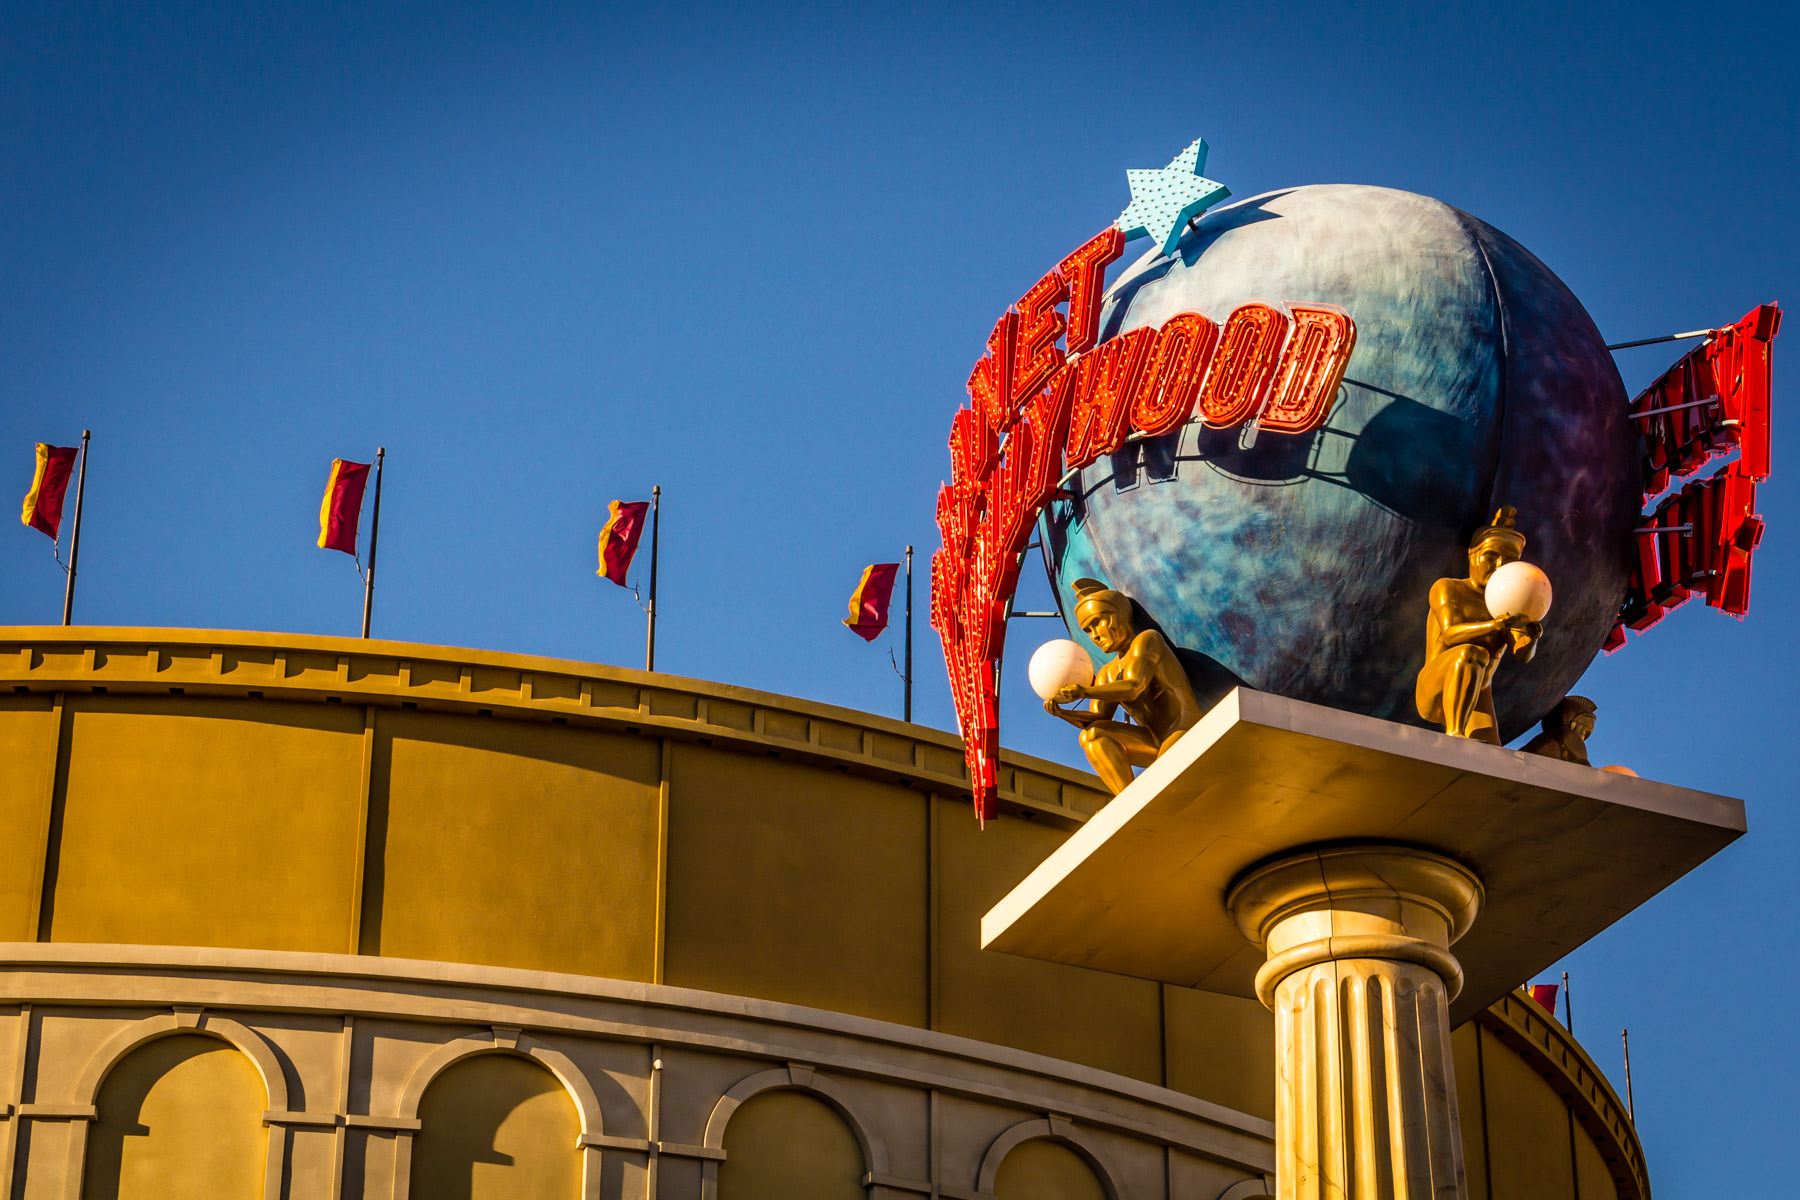 The sign for the Planet Hollywood restaurant at Caesars Palace, Las Vegas.  (Curiously, the Planet Hollywood restaurant isn't located at the Planet Hollywood Hotel & Casino because of a long-term lease agreement.)